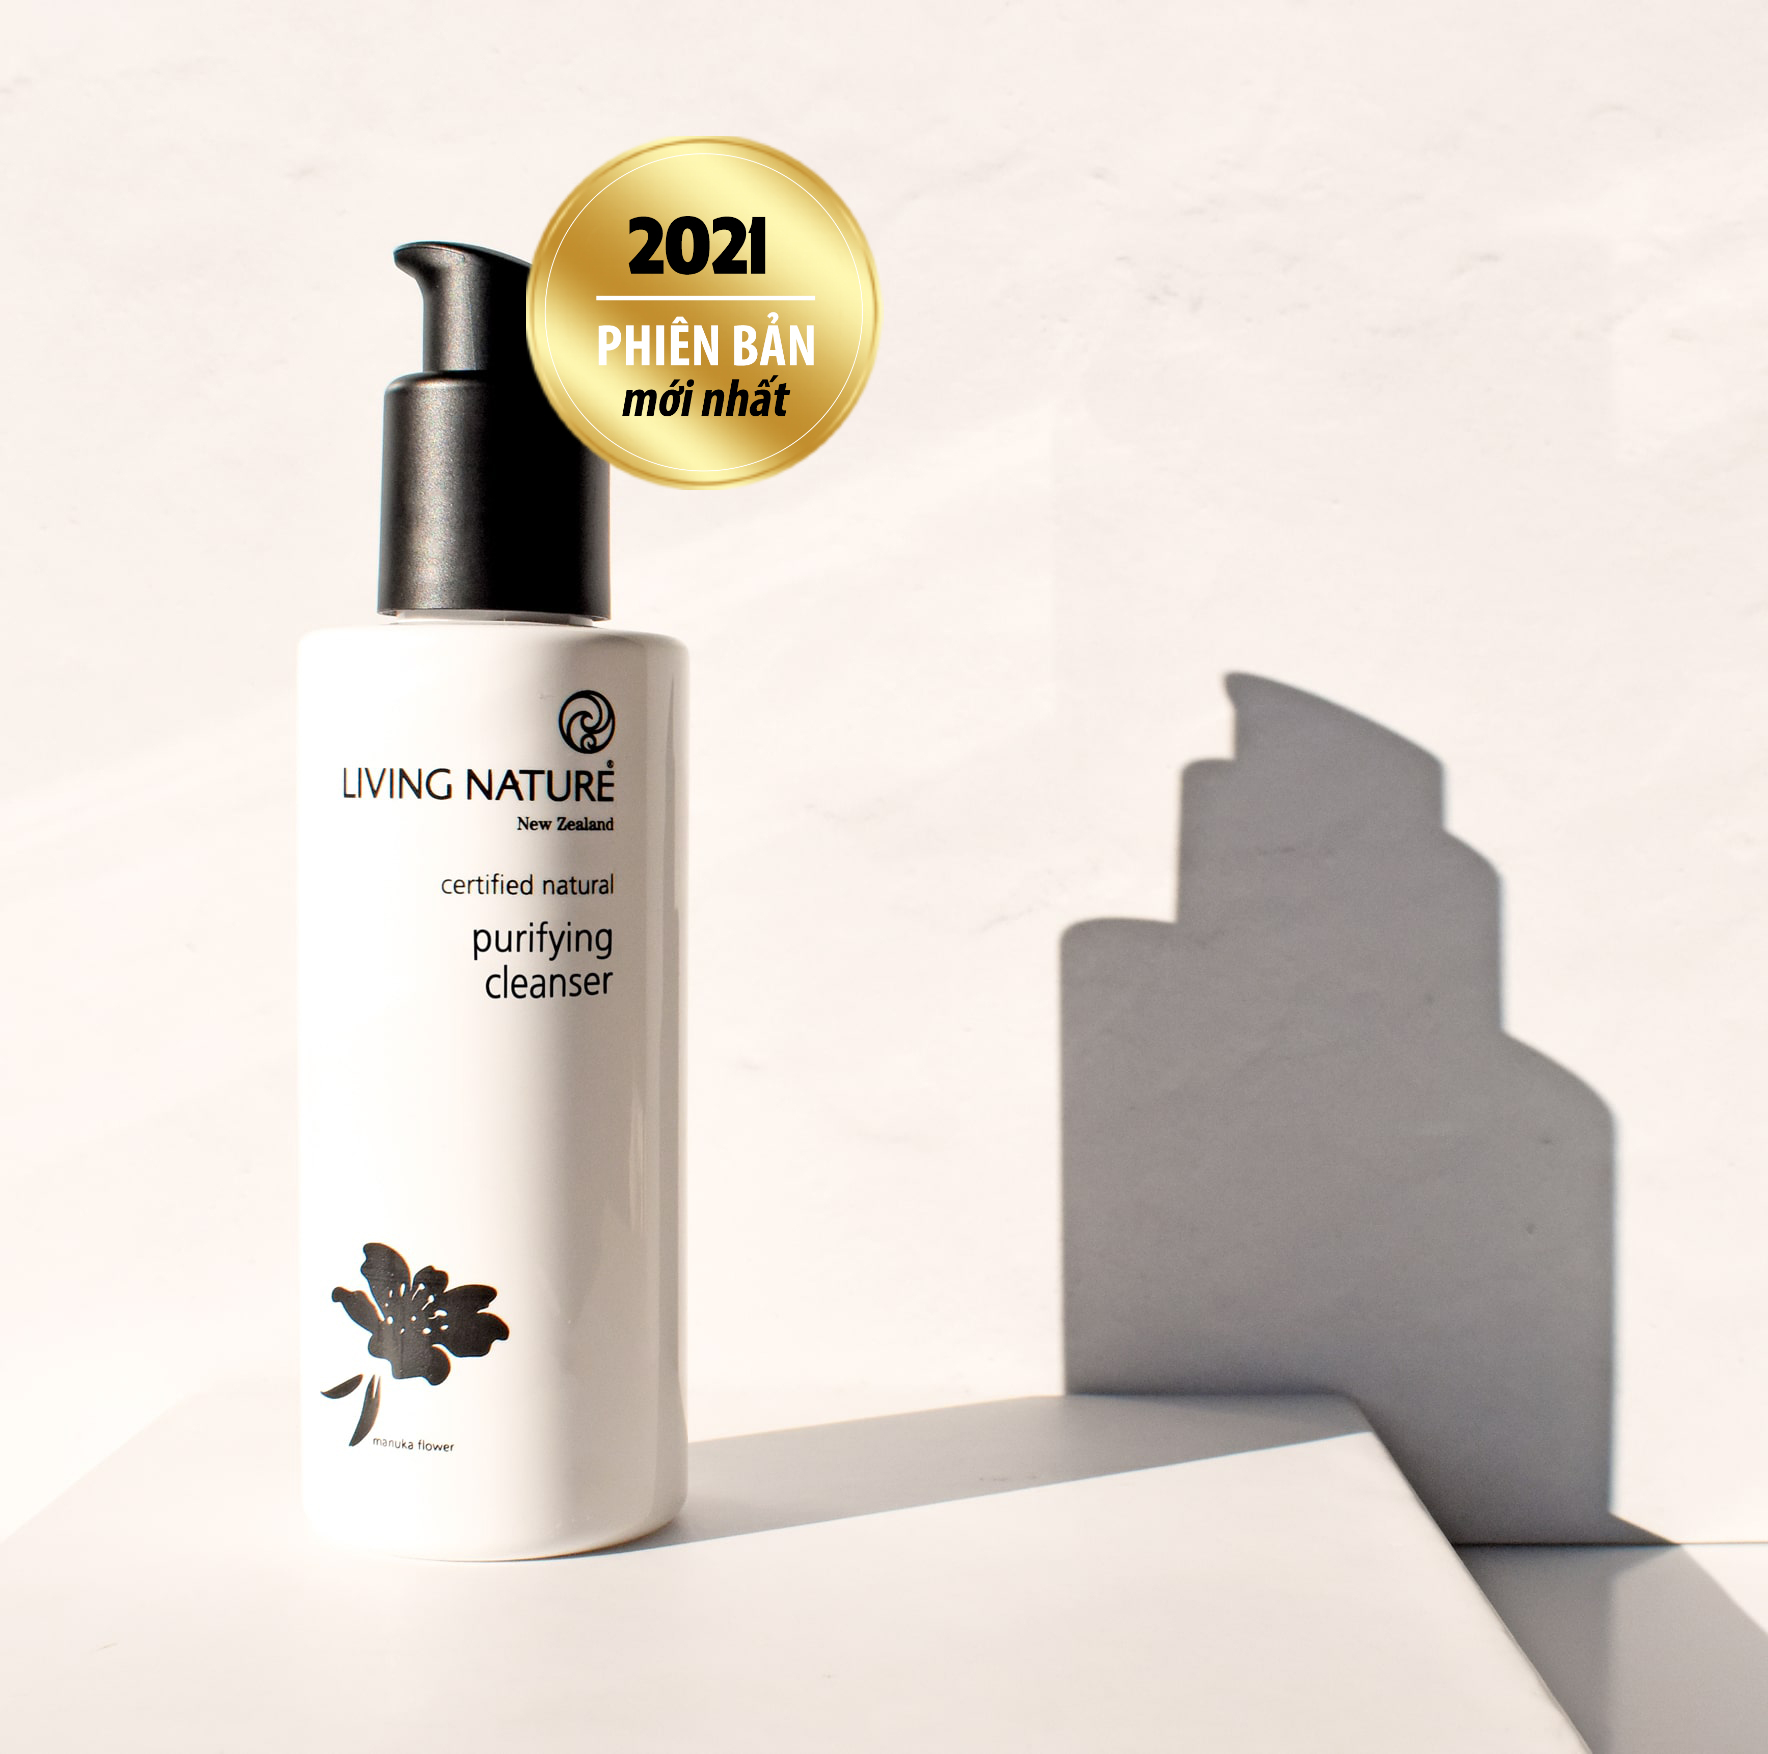 Sữa rửa mặt Living Nature Purifying Cleanser 120ml 2021